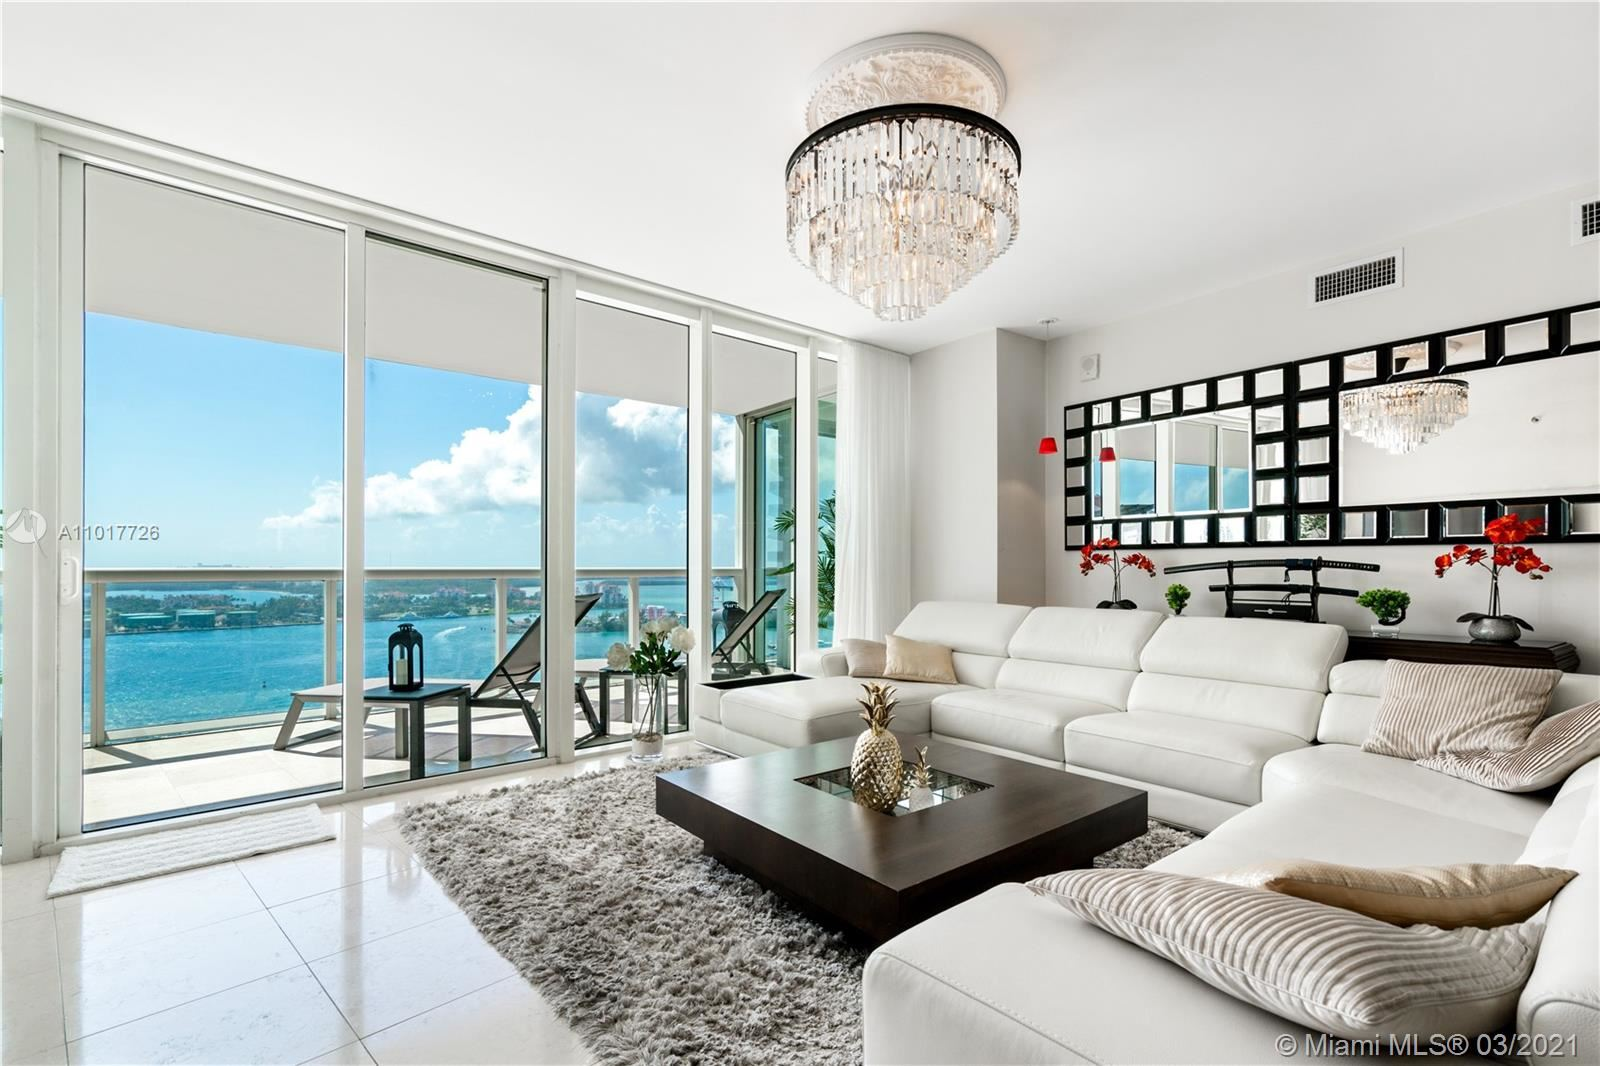 450 Alton Rd #2603, Miami Beach, FL 33139 - #: A11017726